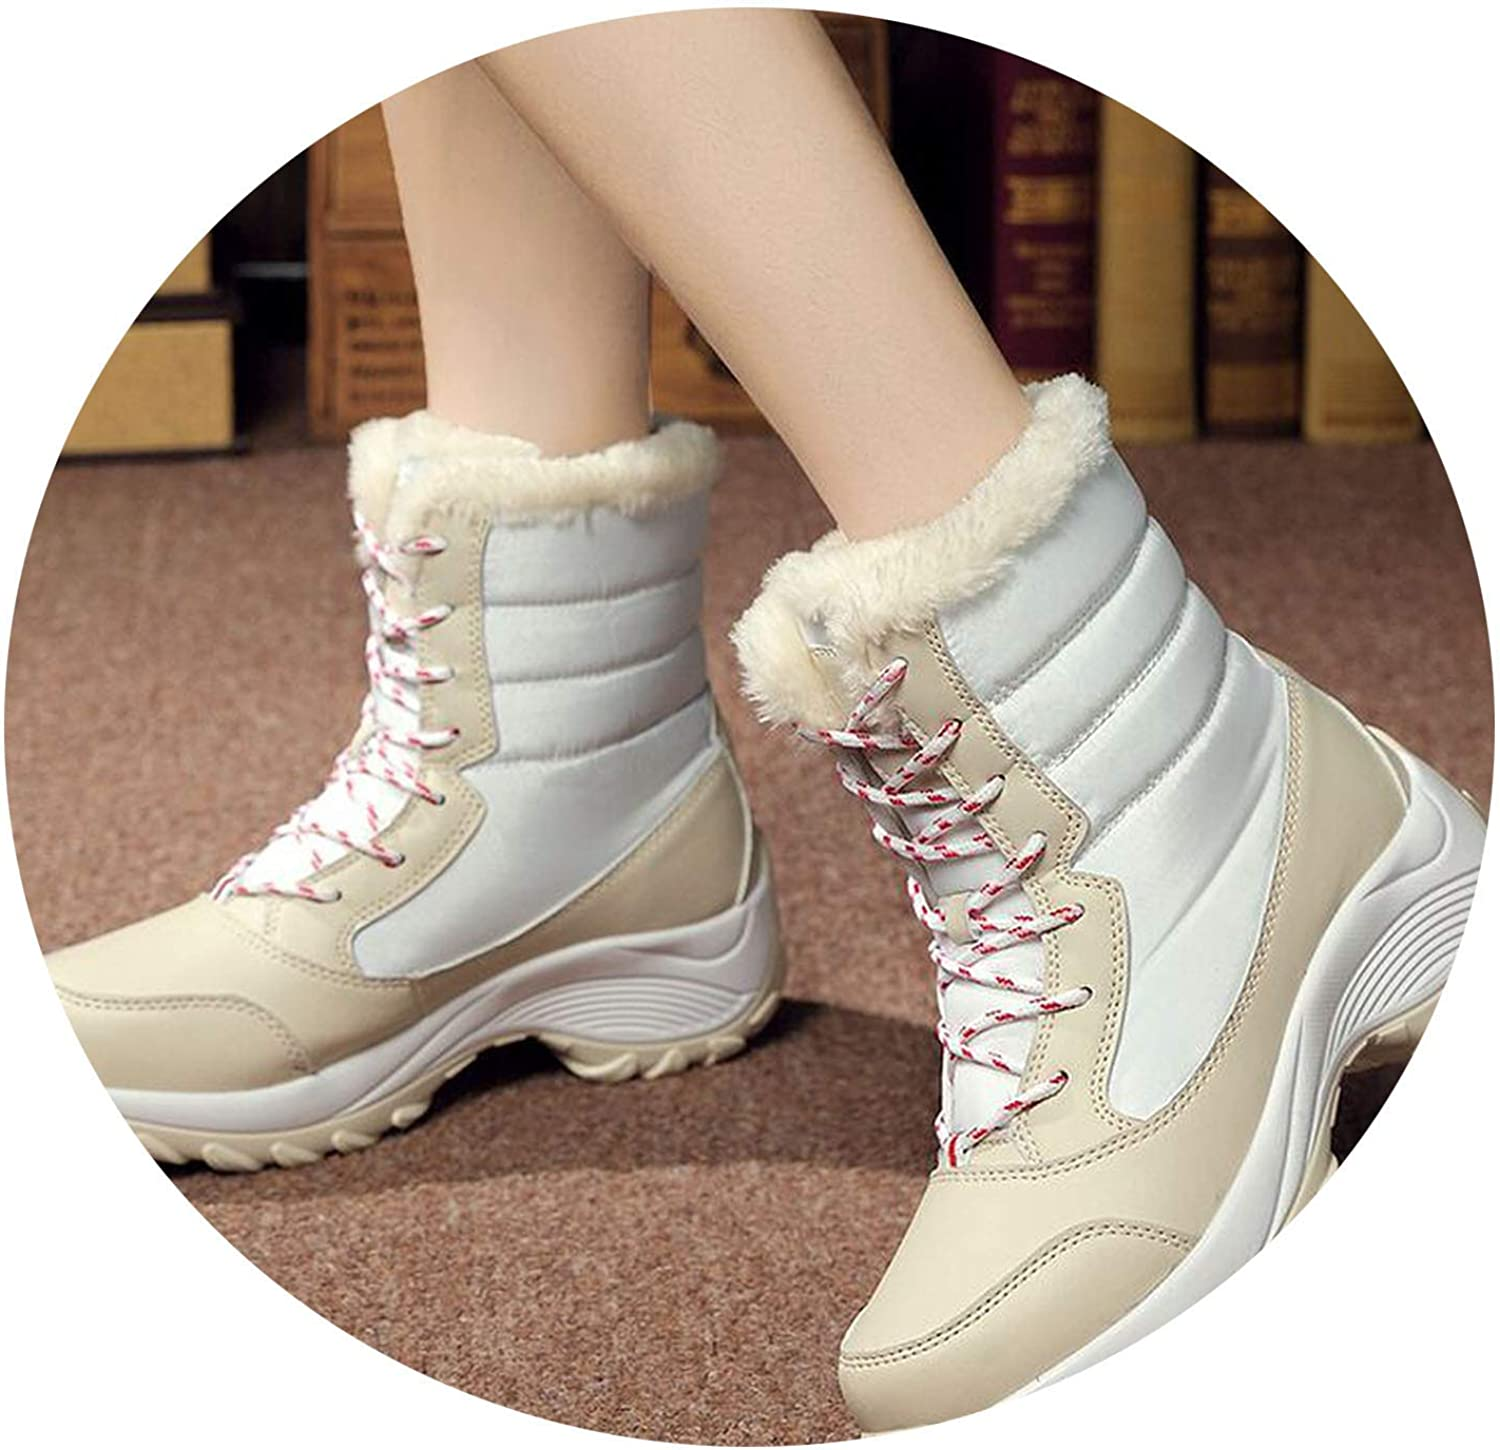 colorful Dream- 2019 Winter Boots Fashion Boots Women Snow Boots shoes girlw Boot